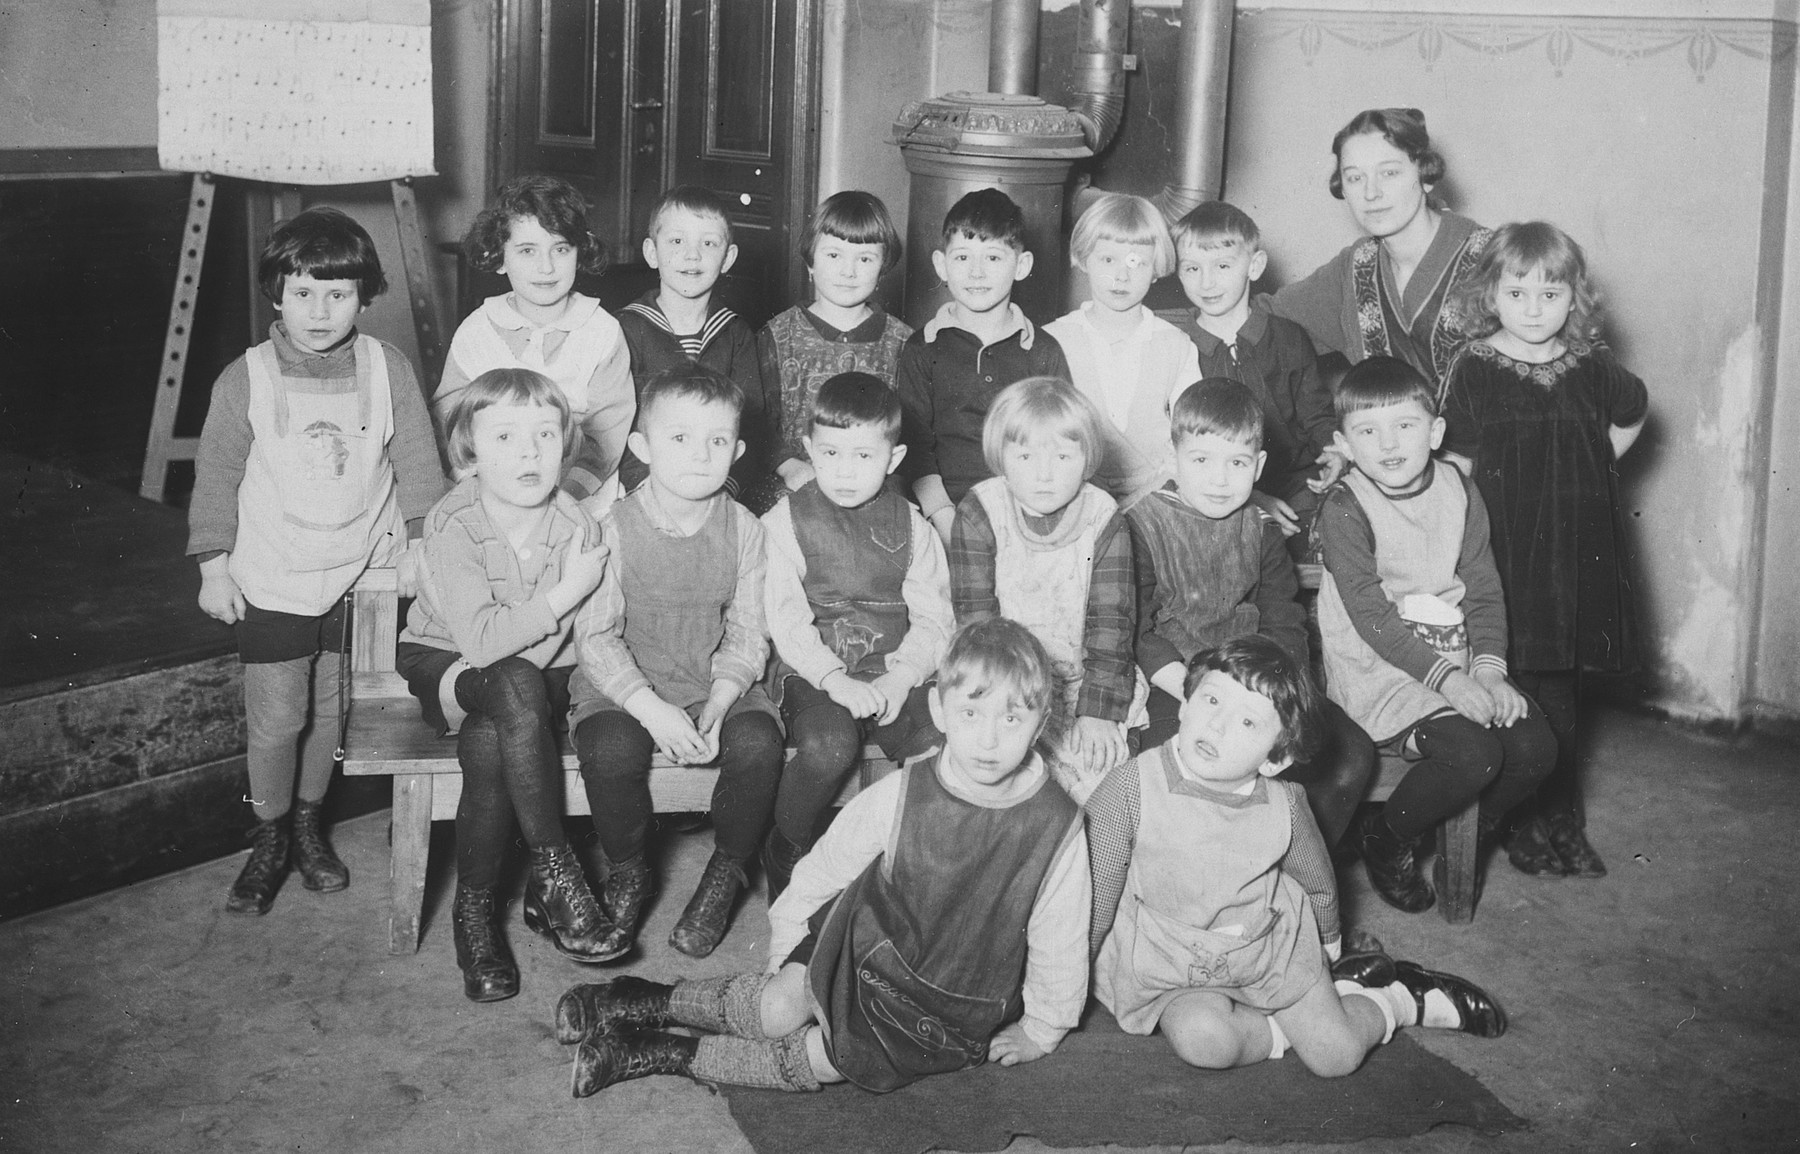 Group portrait of a first grade class in Berlin, Germany.  Among those pictured is Erich Zielenziger, standing in the back , fifth from the right.